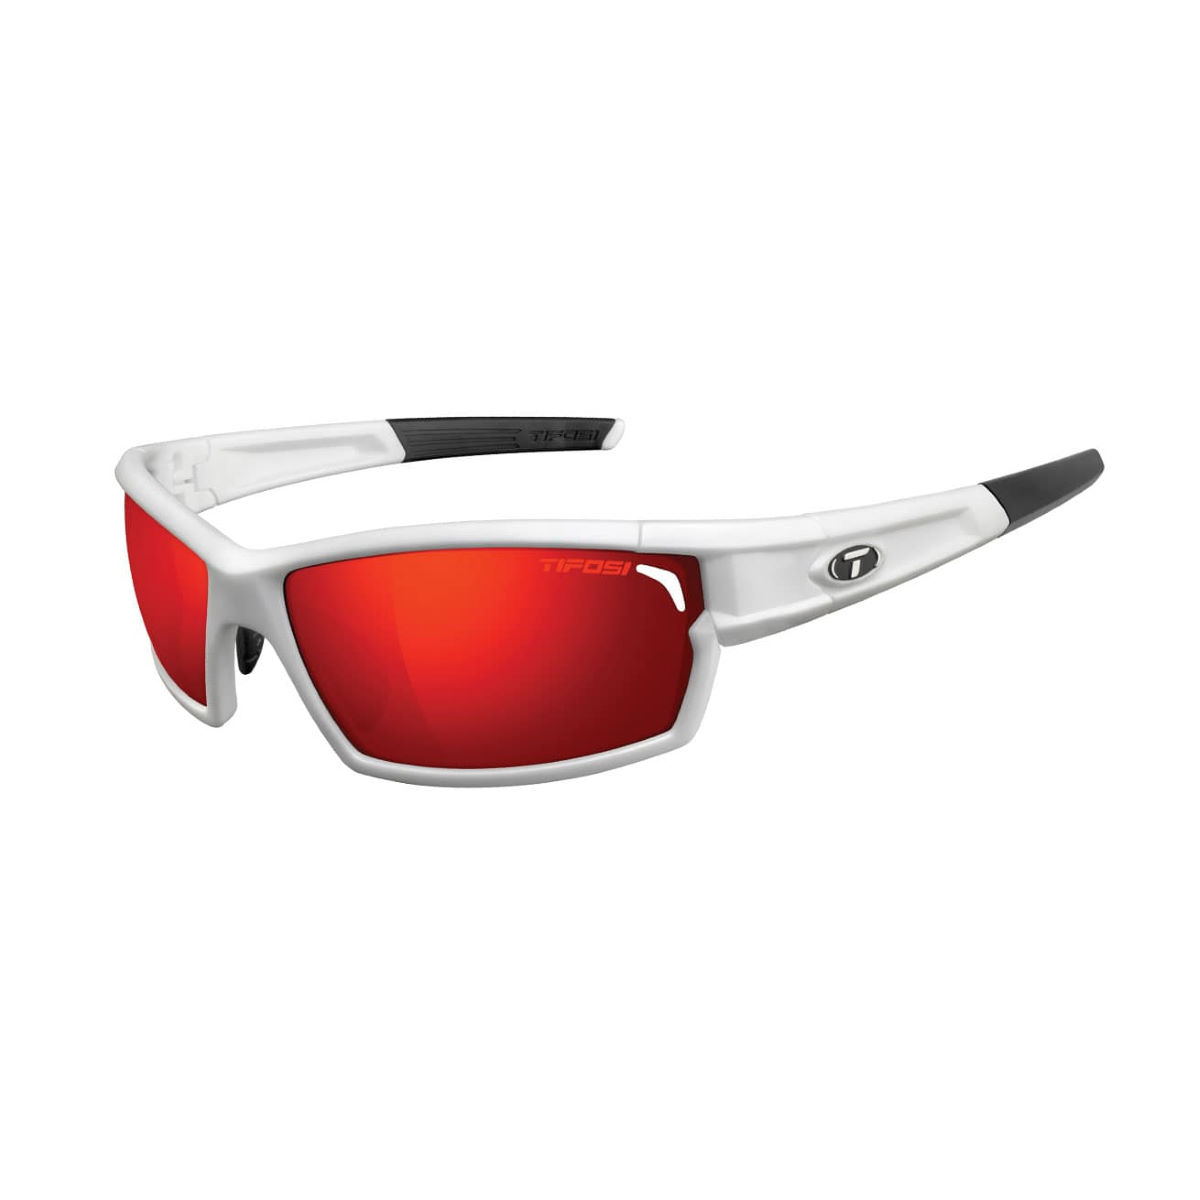 Lunettes de soleil Tifosi Camrock Clarion - 3 Lens Clear/AC Red